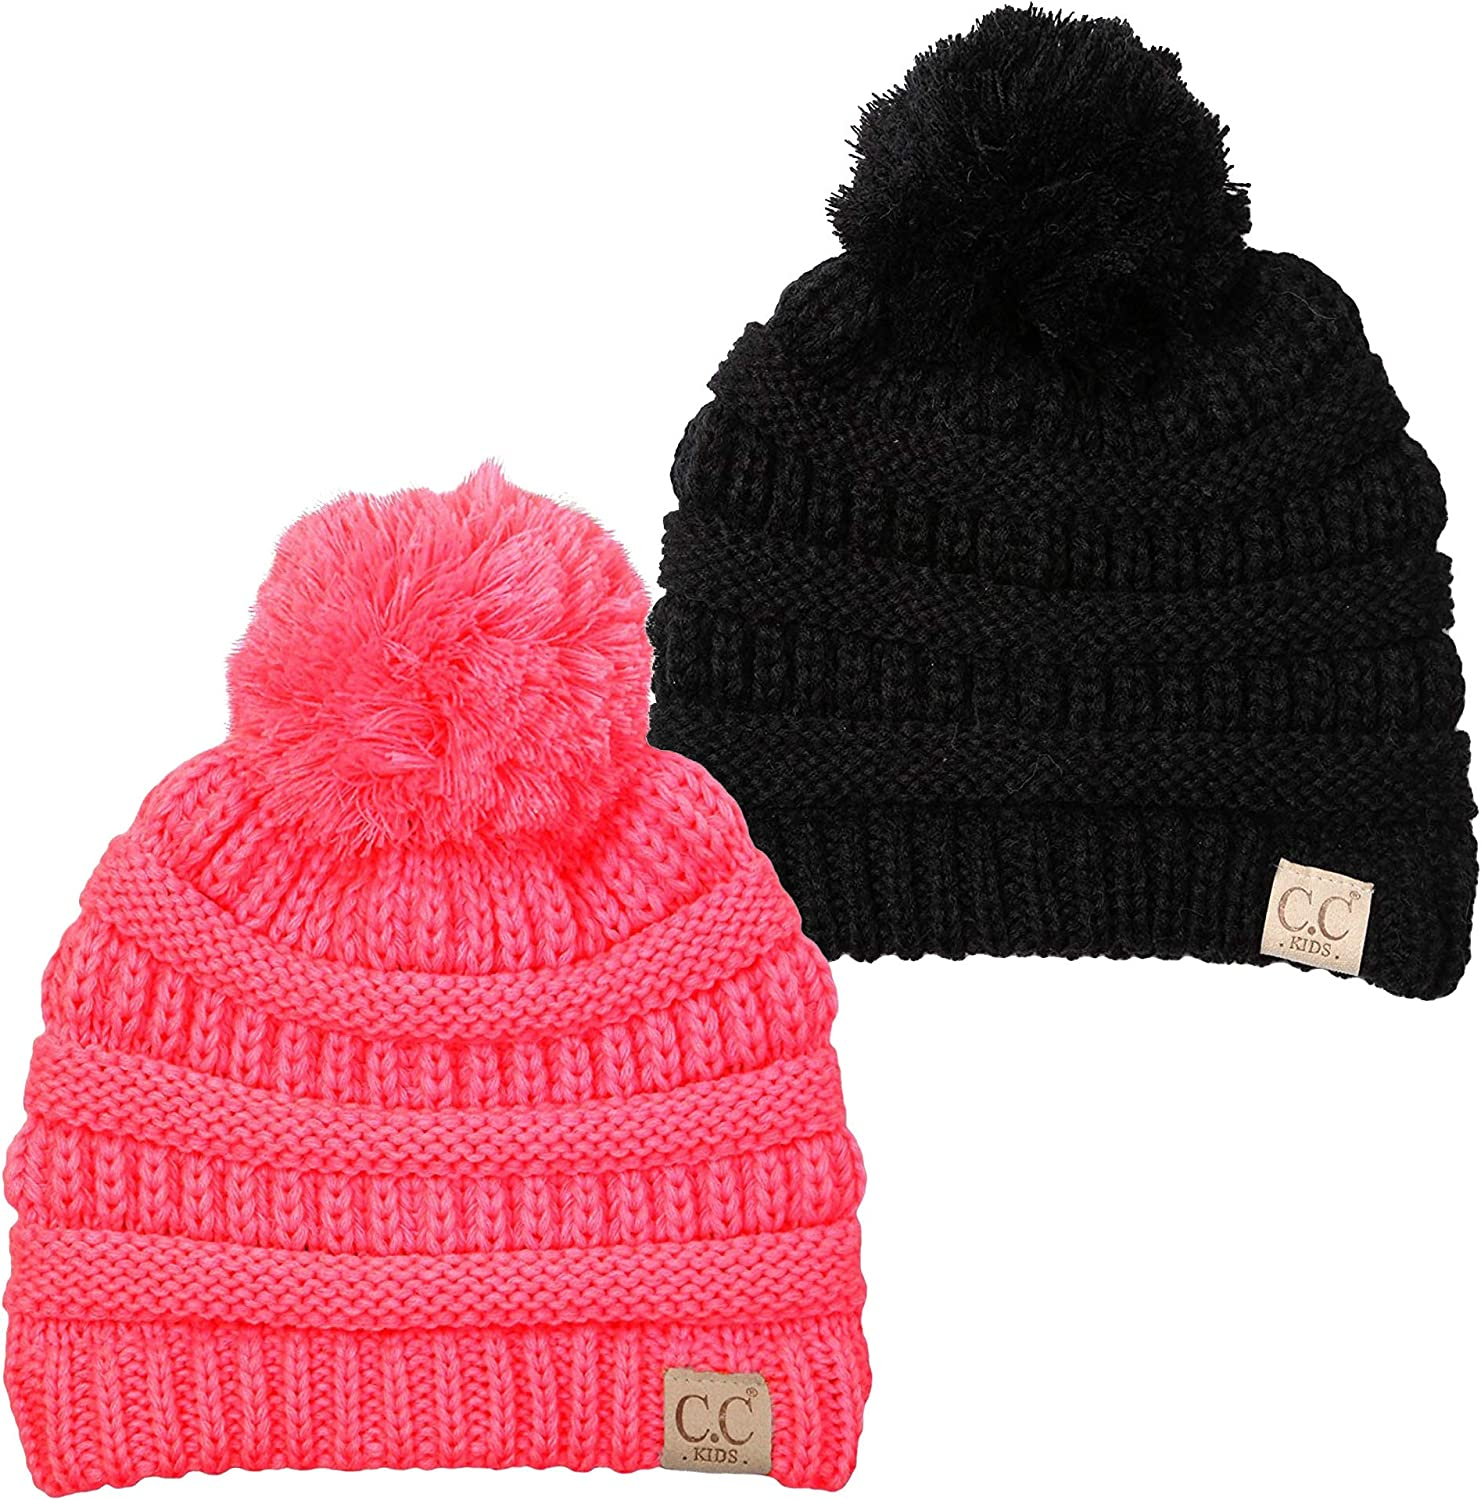 Womens Ivory Cable Knit Pom Beanie Hat Knit Stocking Cap Blue Red Black Stripe